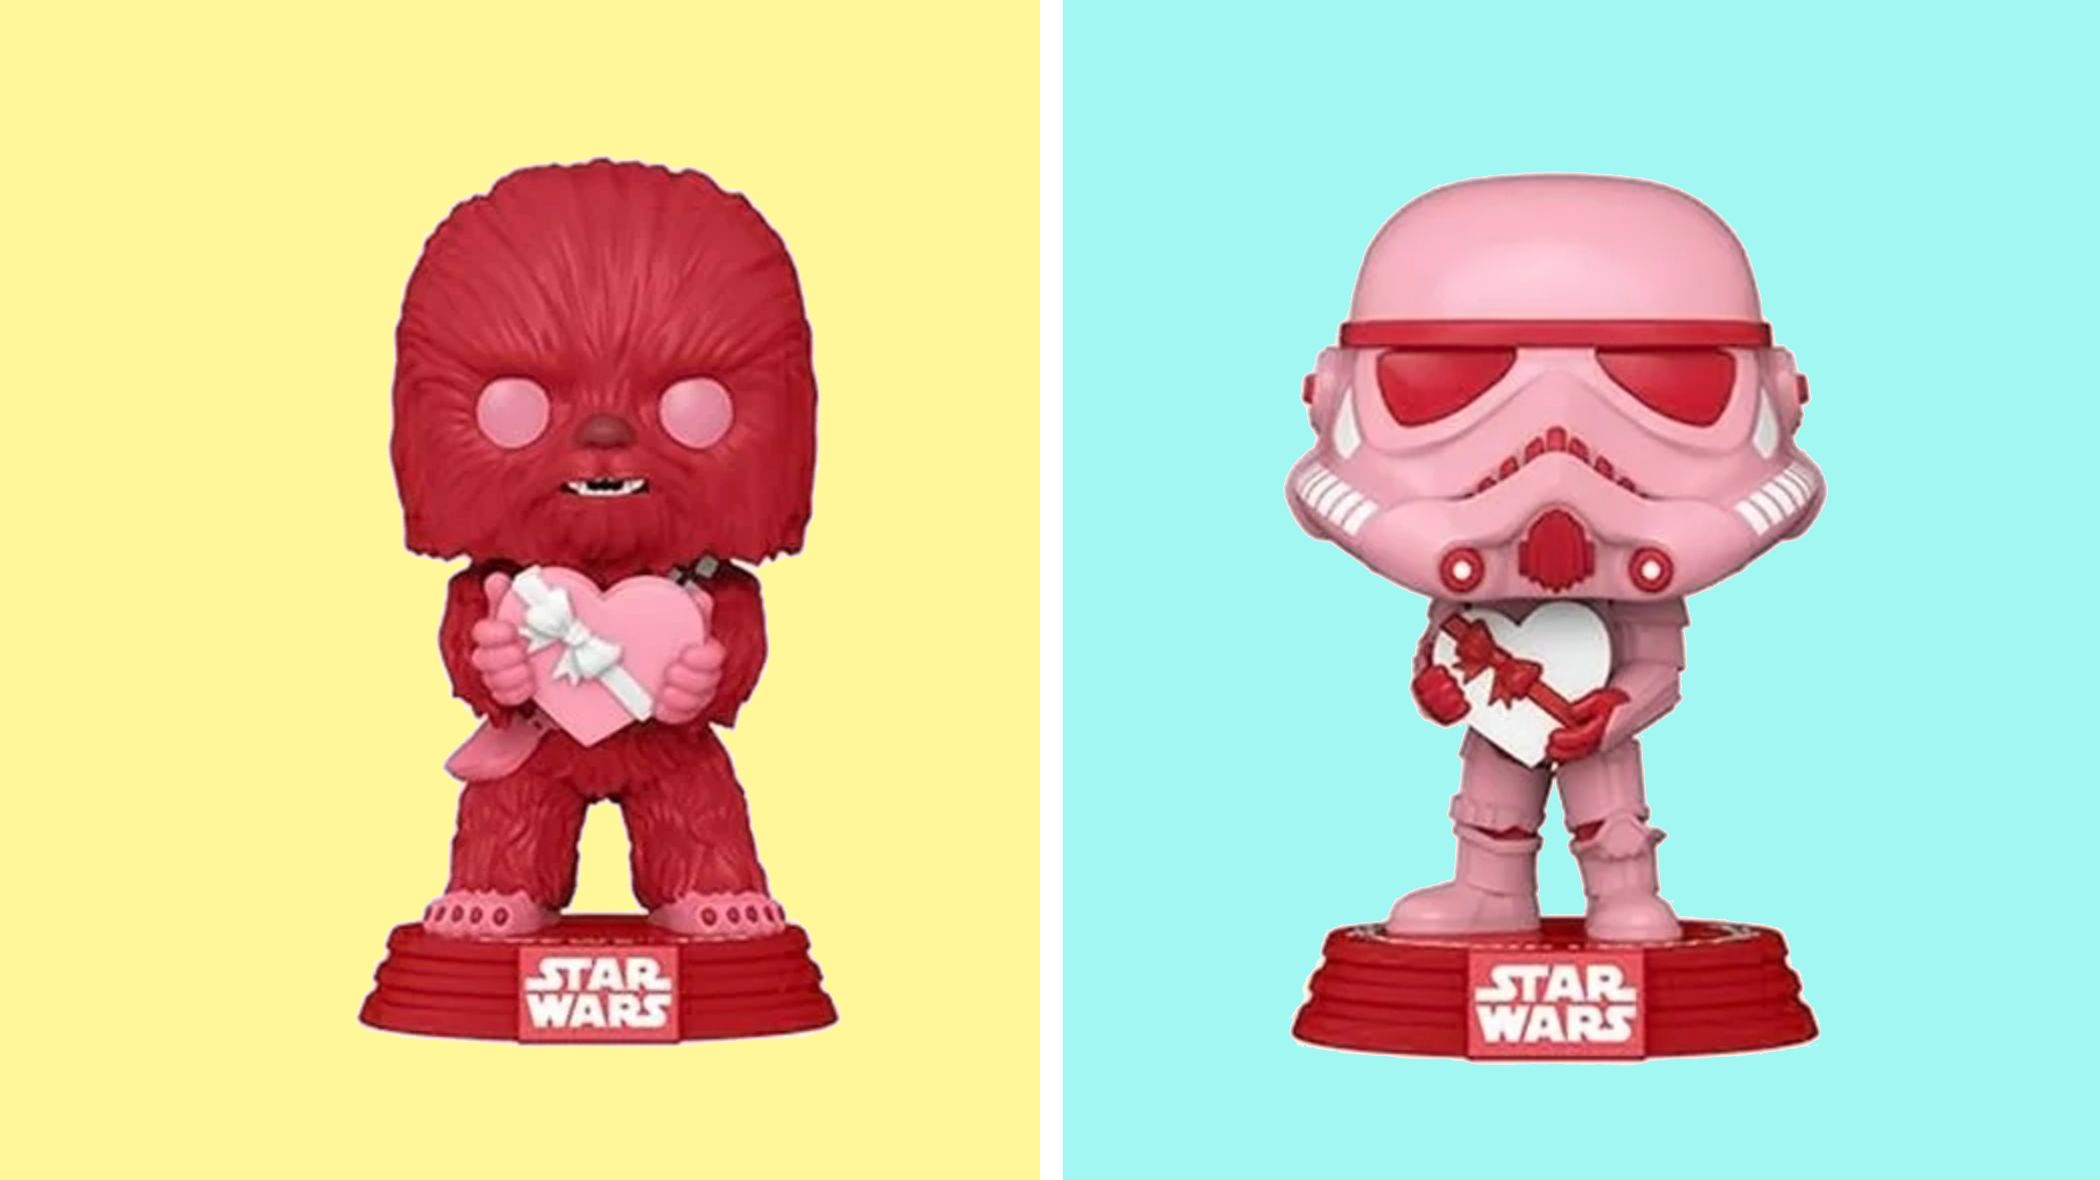 Make Your Partner Swoon With These Valentine's Day <em>Star Wars</em> Funko Pops